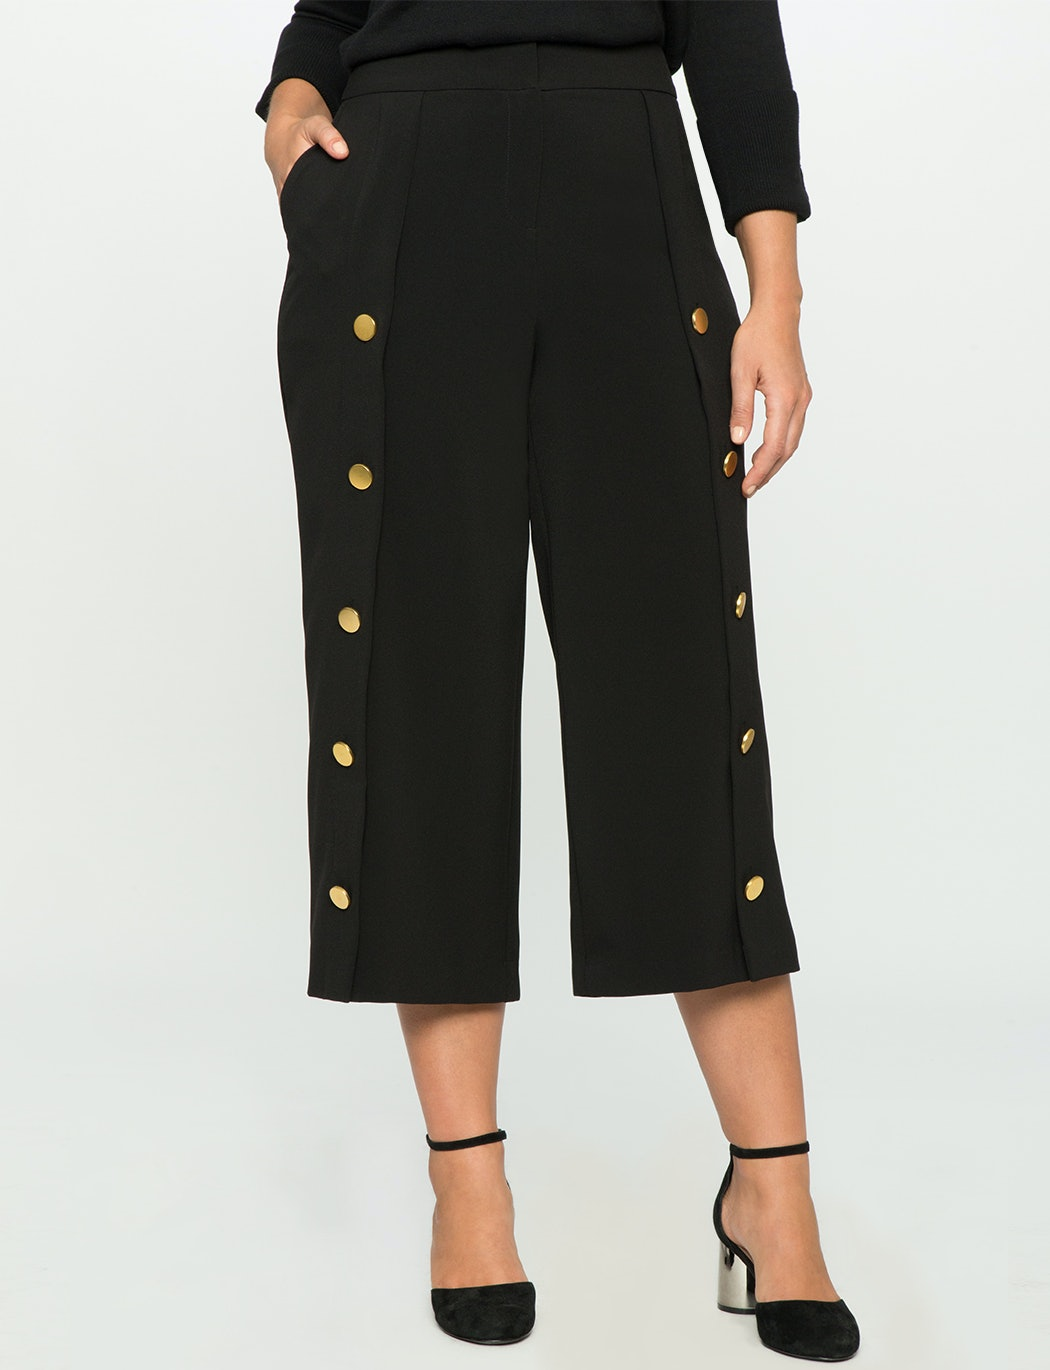 99a83ca2a0e 37 Plus Size Cropped Wide Leg Pants That ll Make Your Summer To Fall  Transition A Breeze